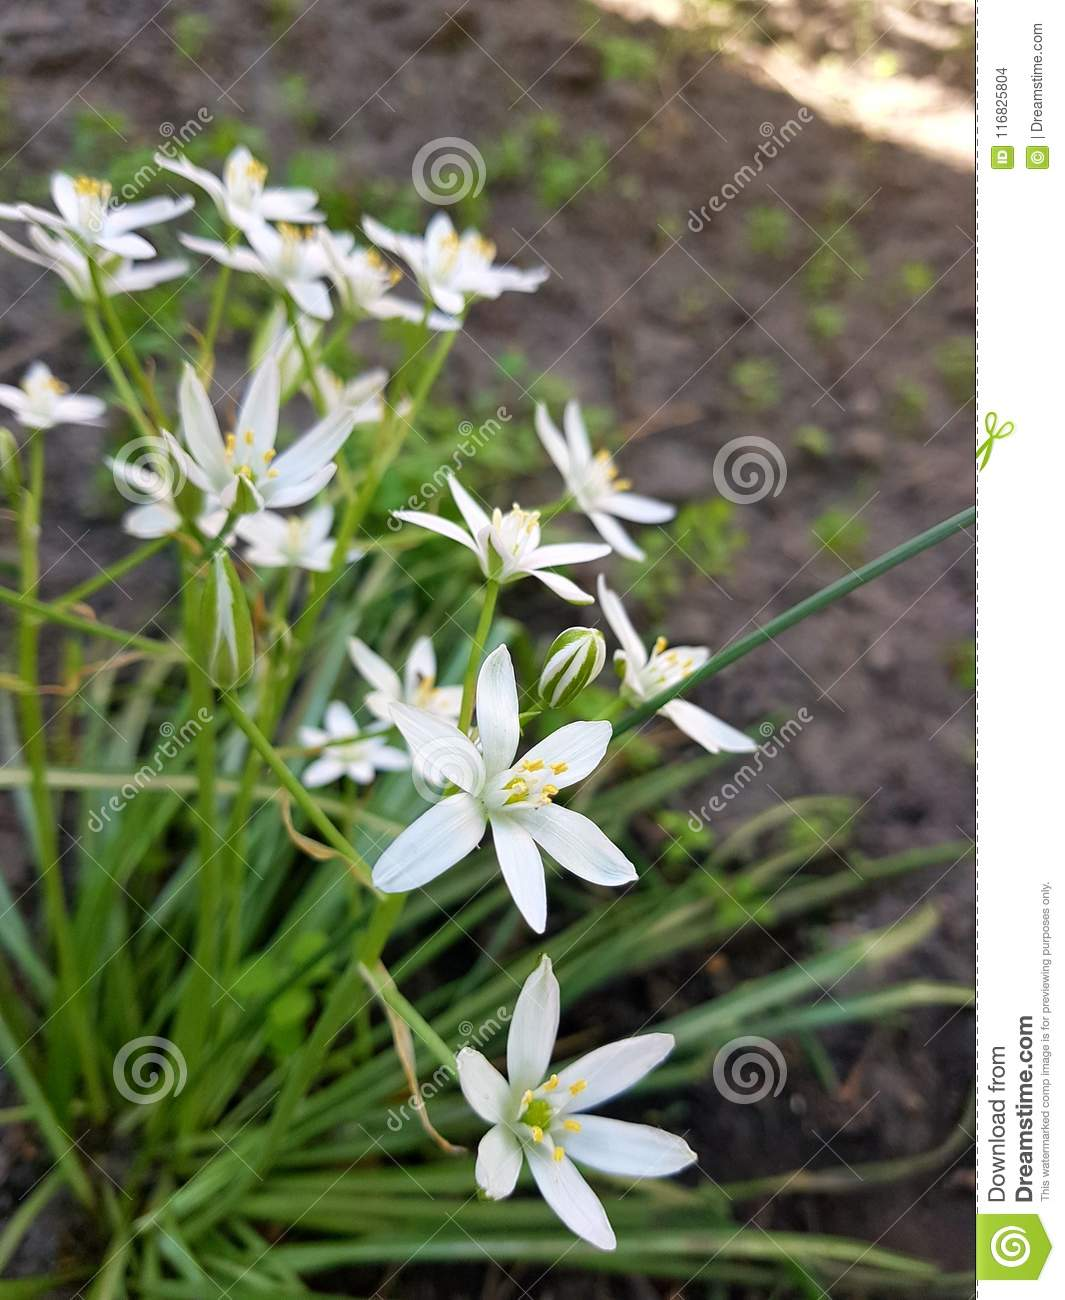 White Delicate Flowers On A Long Green Stem With Green Thin Long